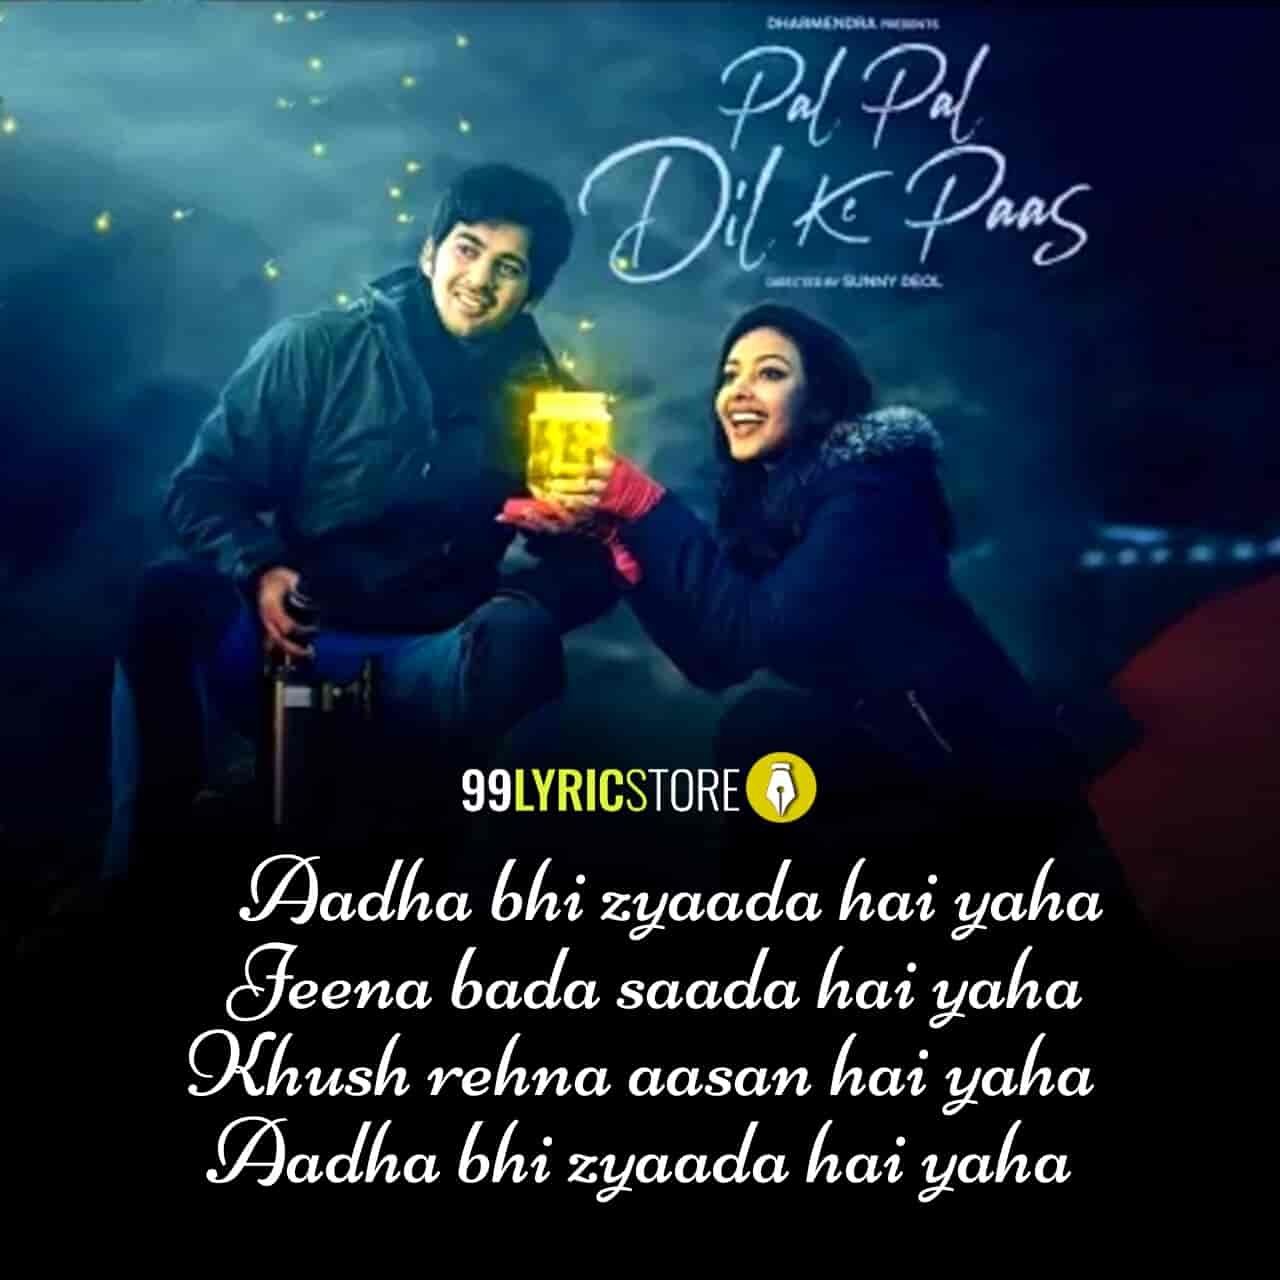 Aadha Bhi Zyaada Lyrics from movie Pal Pal Dil Ke Paas